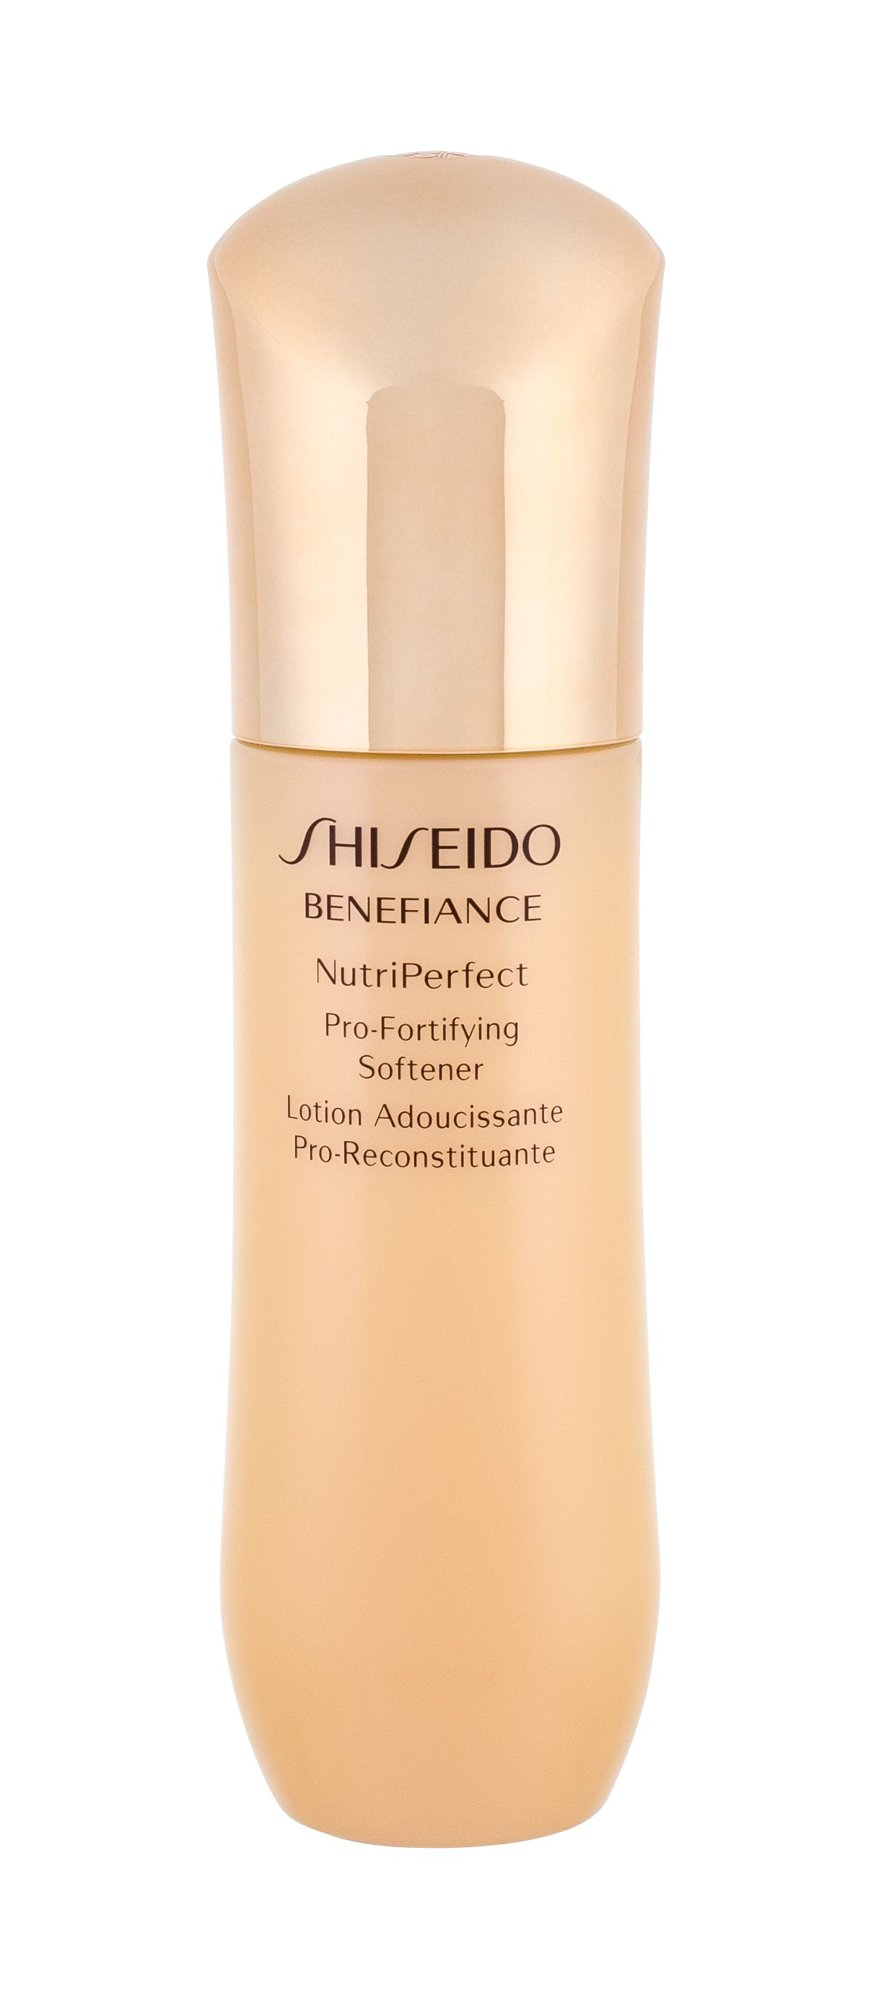 Shiseido Benefiance NutriPerfect Cleansing Water 150ml